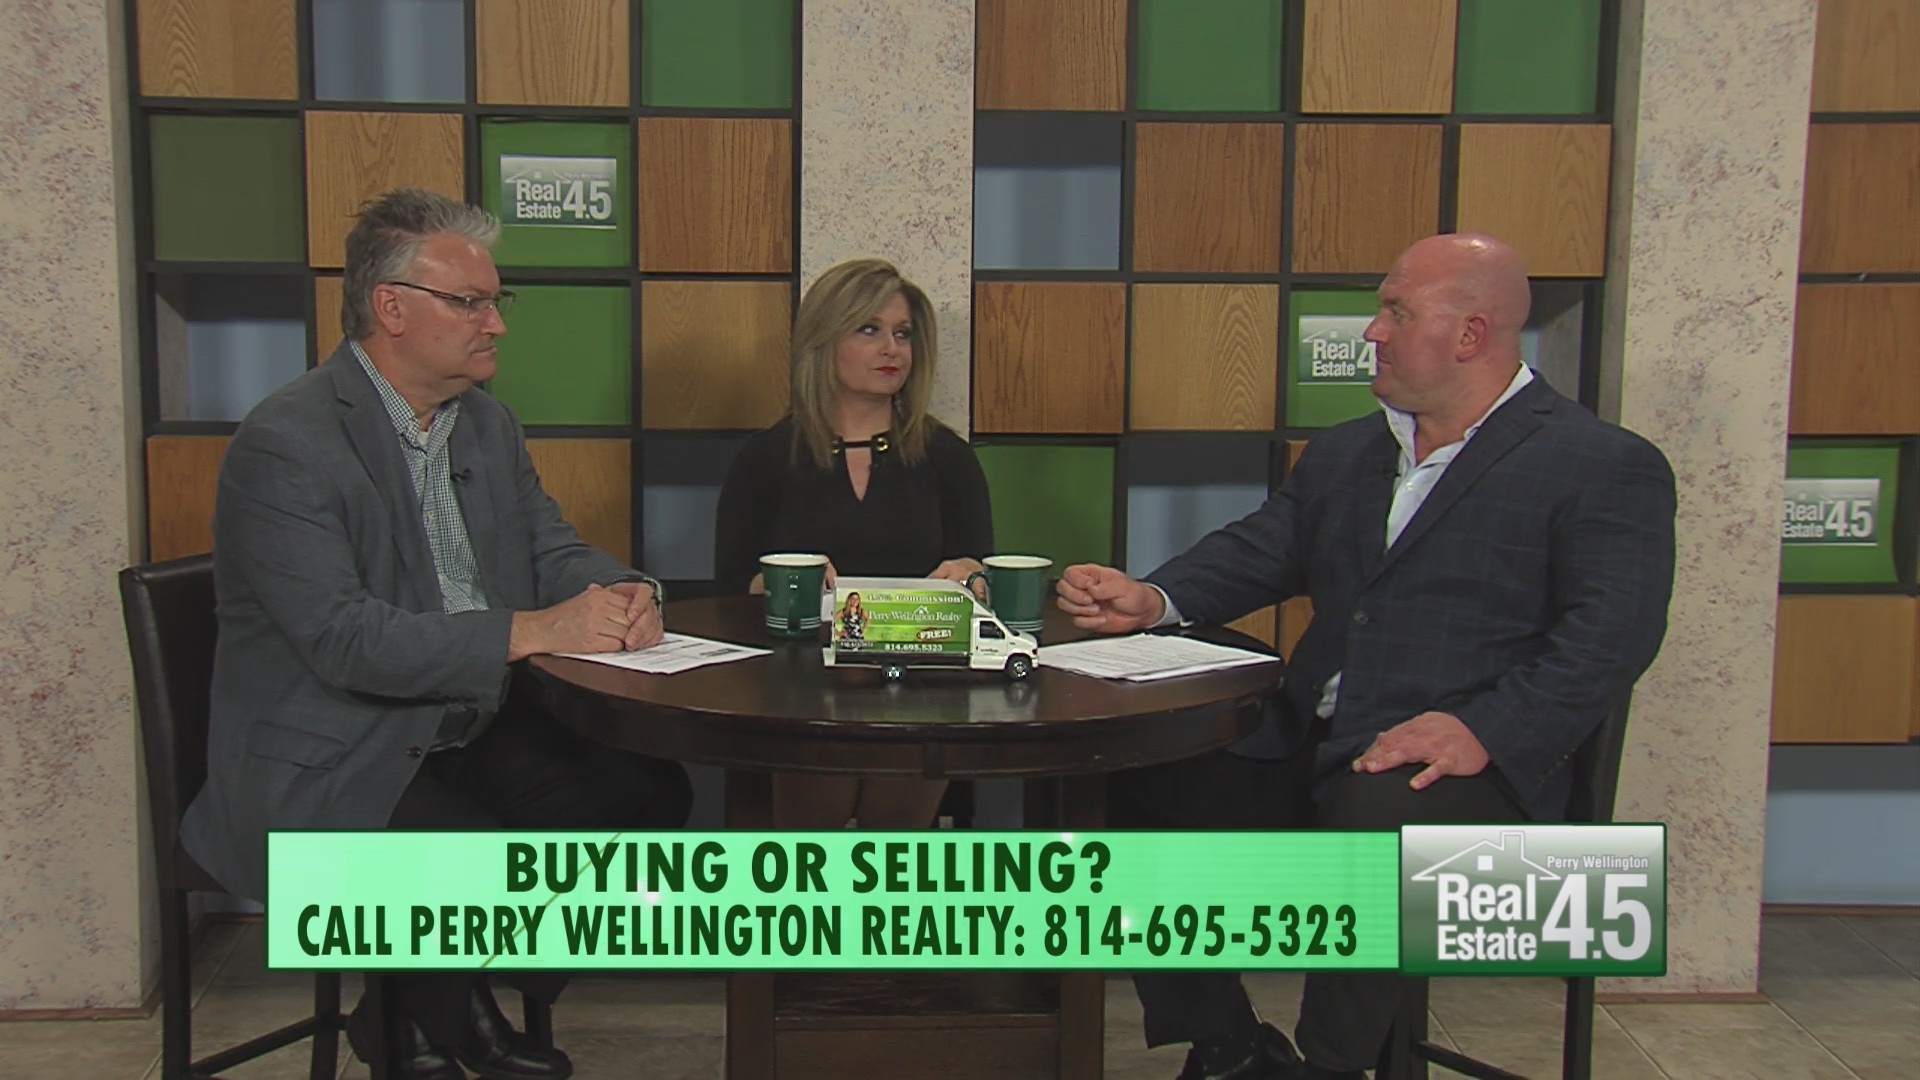 Perry Wellington: What buyers are looking for